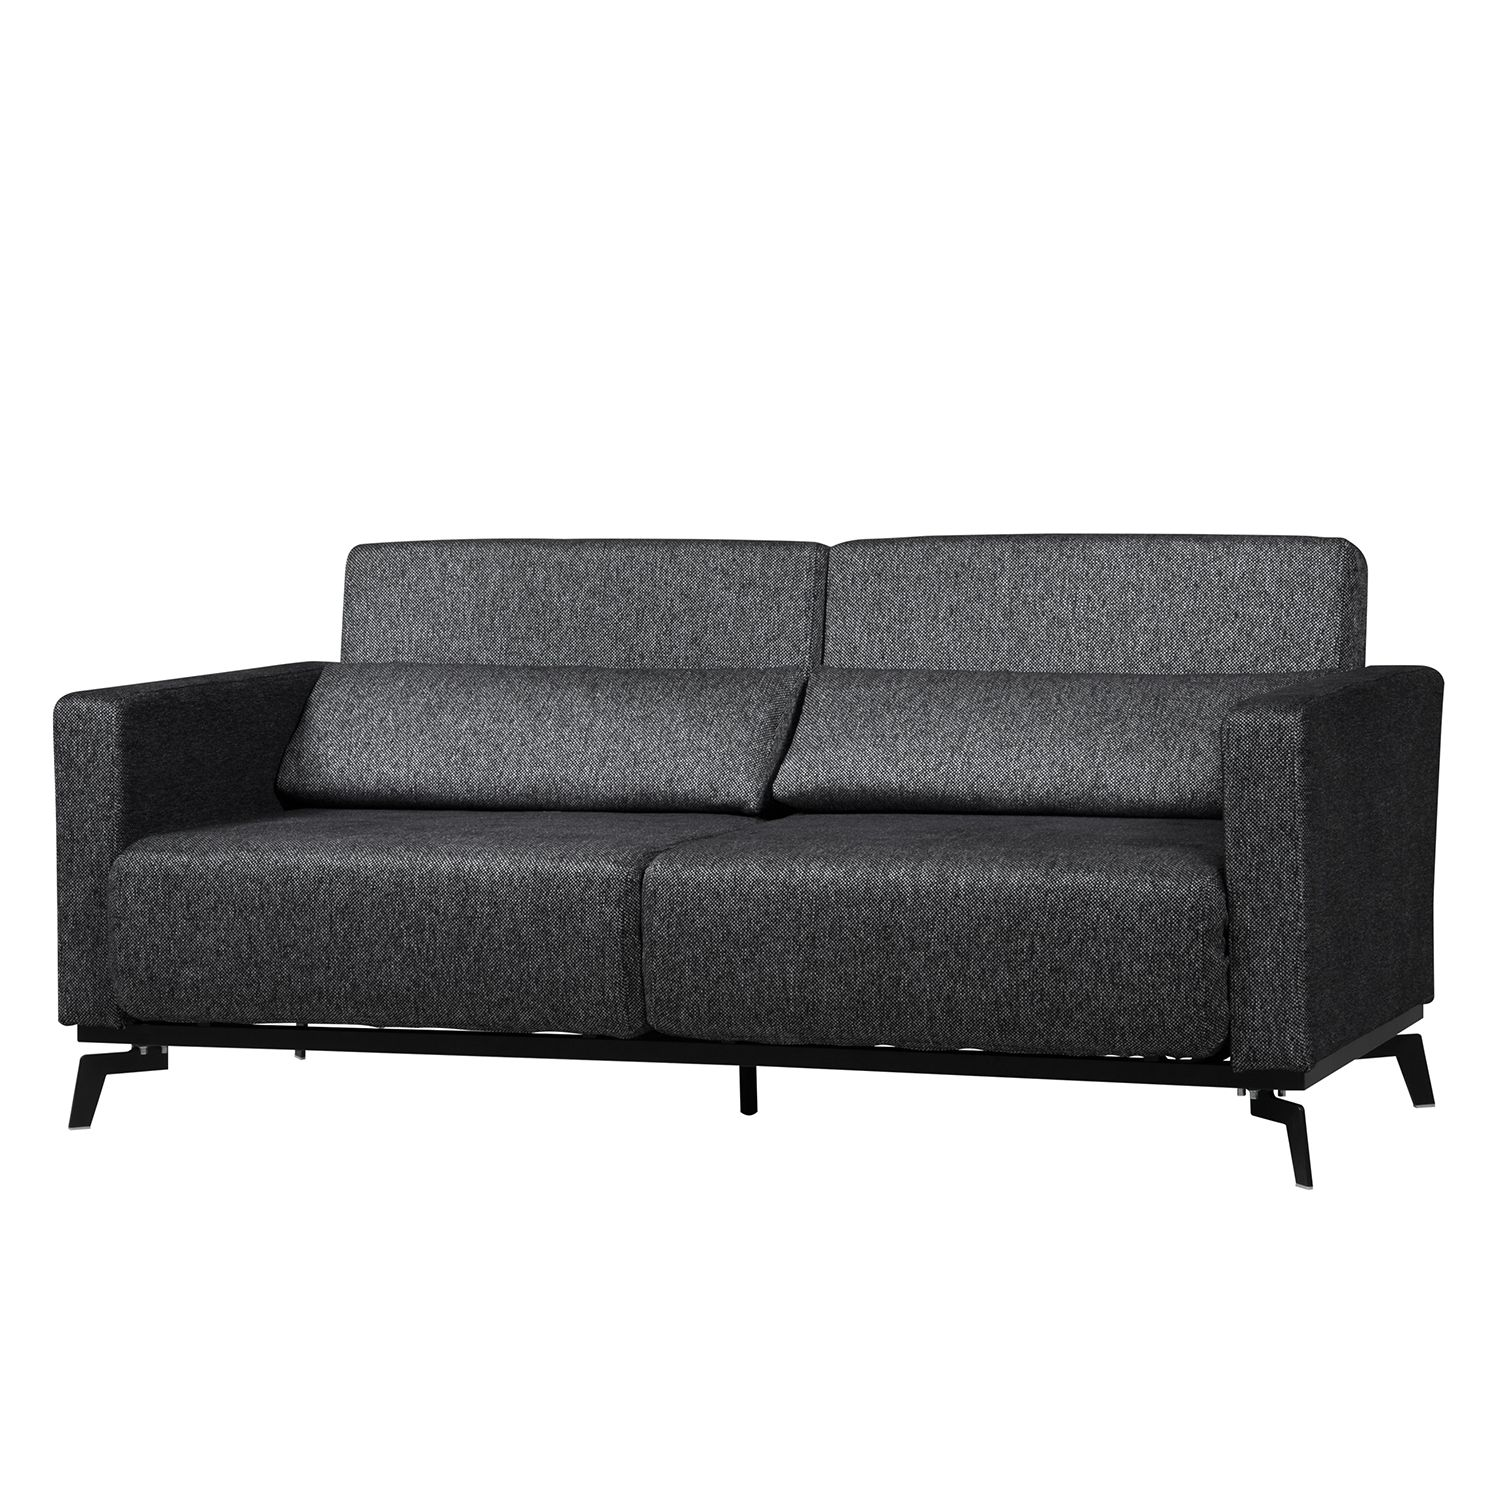 schlafsofa maven webstoff stoff parsa grau schwarz g nstig online kaufen. Black Bedroom Furniture Sets. Home Design Ideas